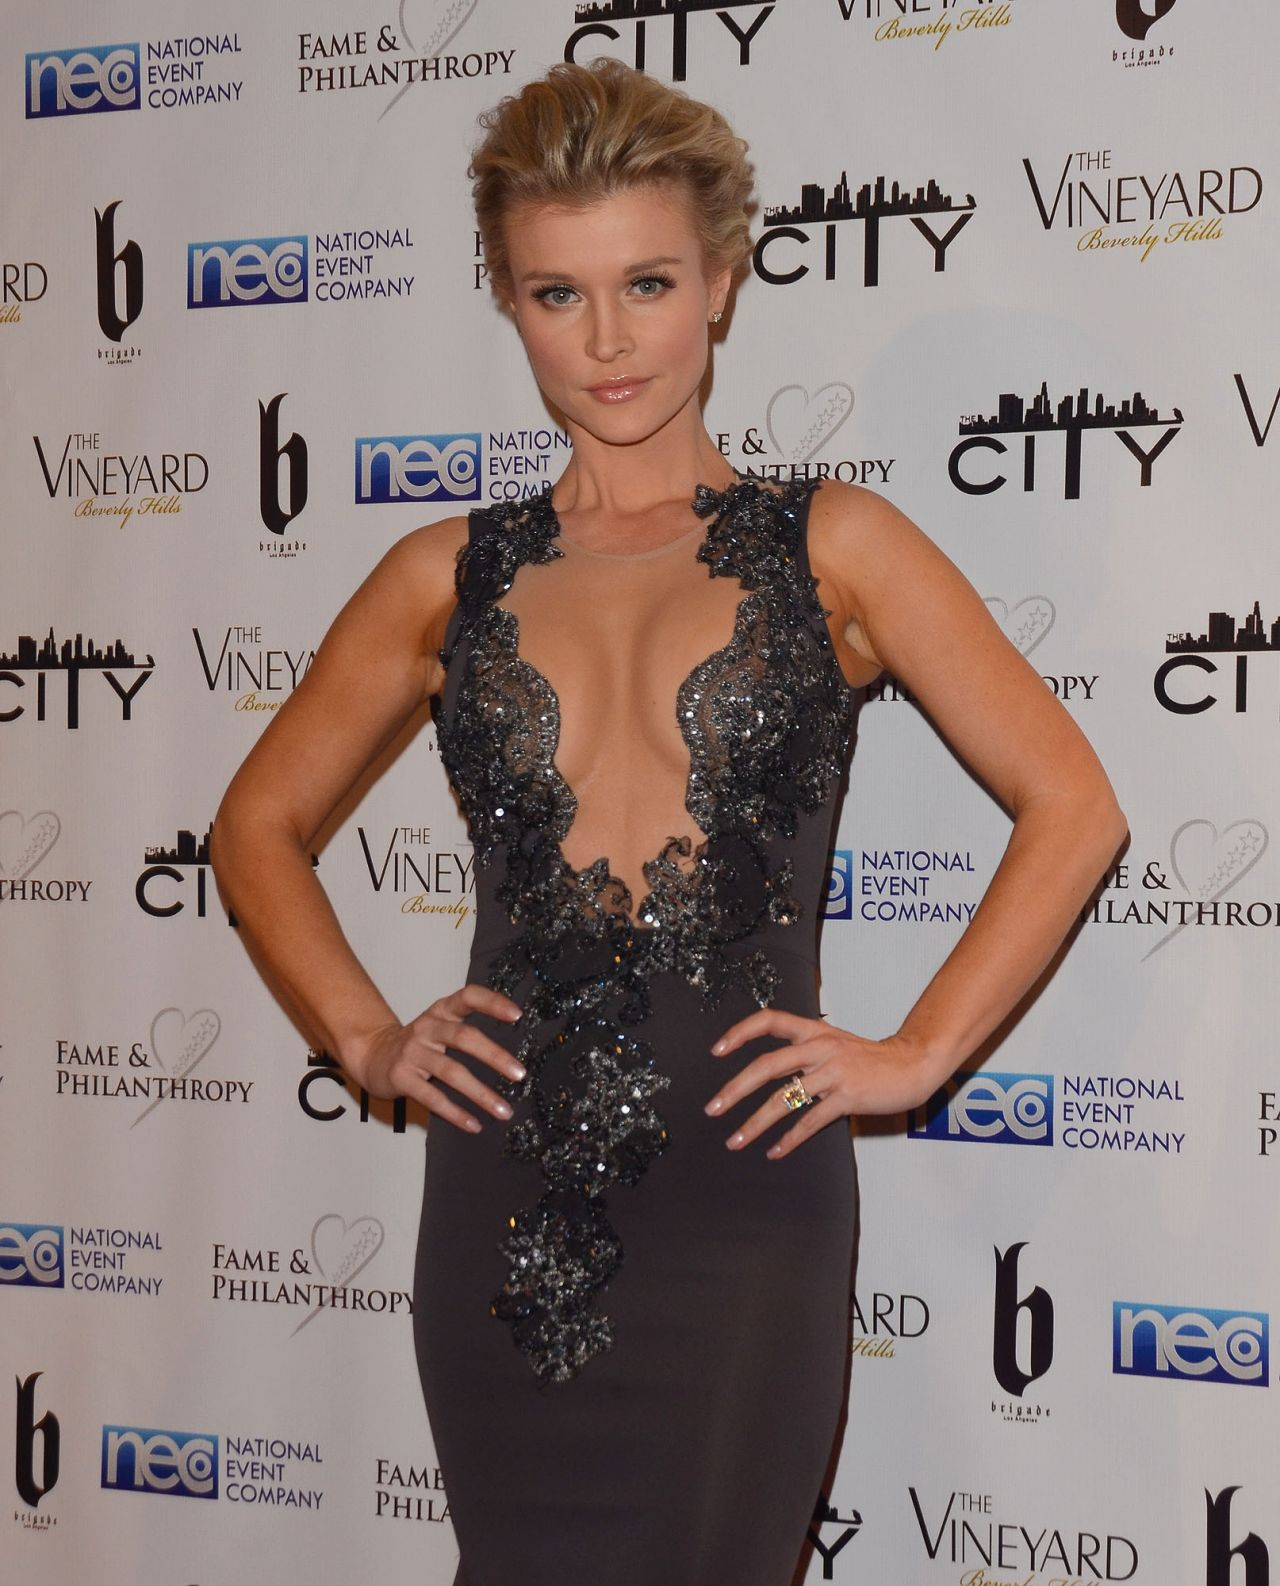 Joanna Krupa - 2014 Fame & Philanthropy Post-Oscar Party in Beverly Hills